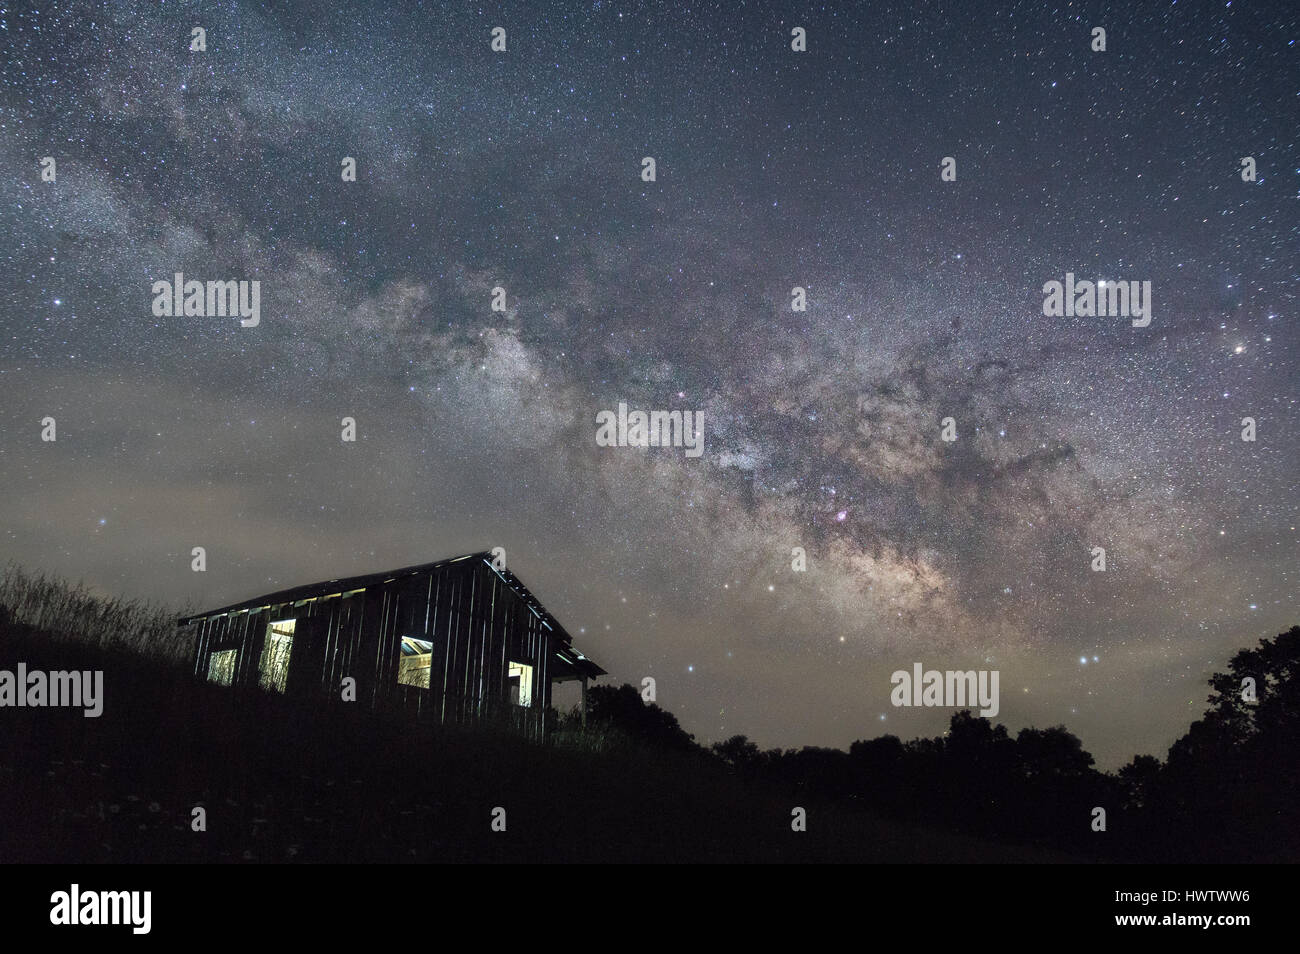 The stars and  Milky Way galactic core, separated by a thin shroud of fog, loom over a dark landscape and a lone - Stock Image